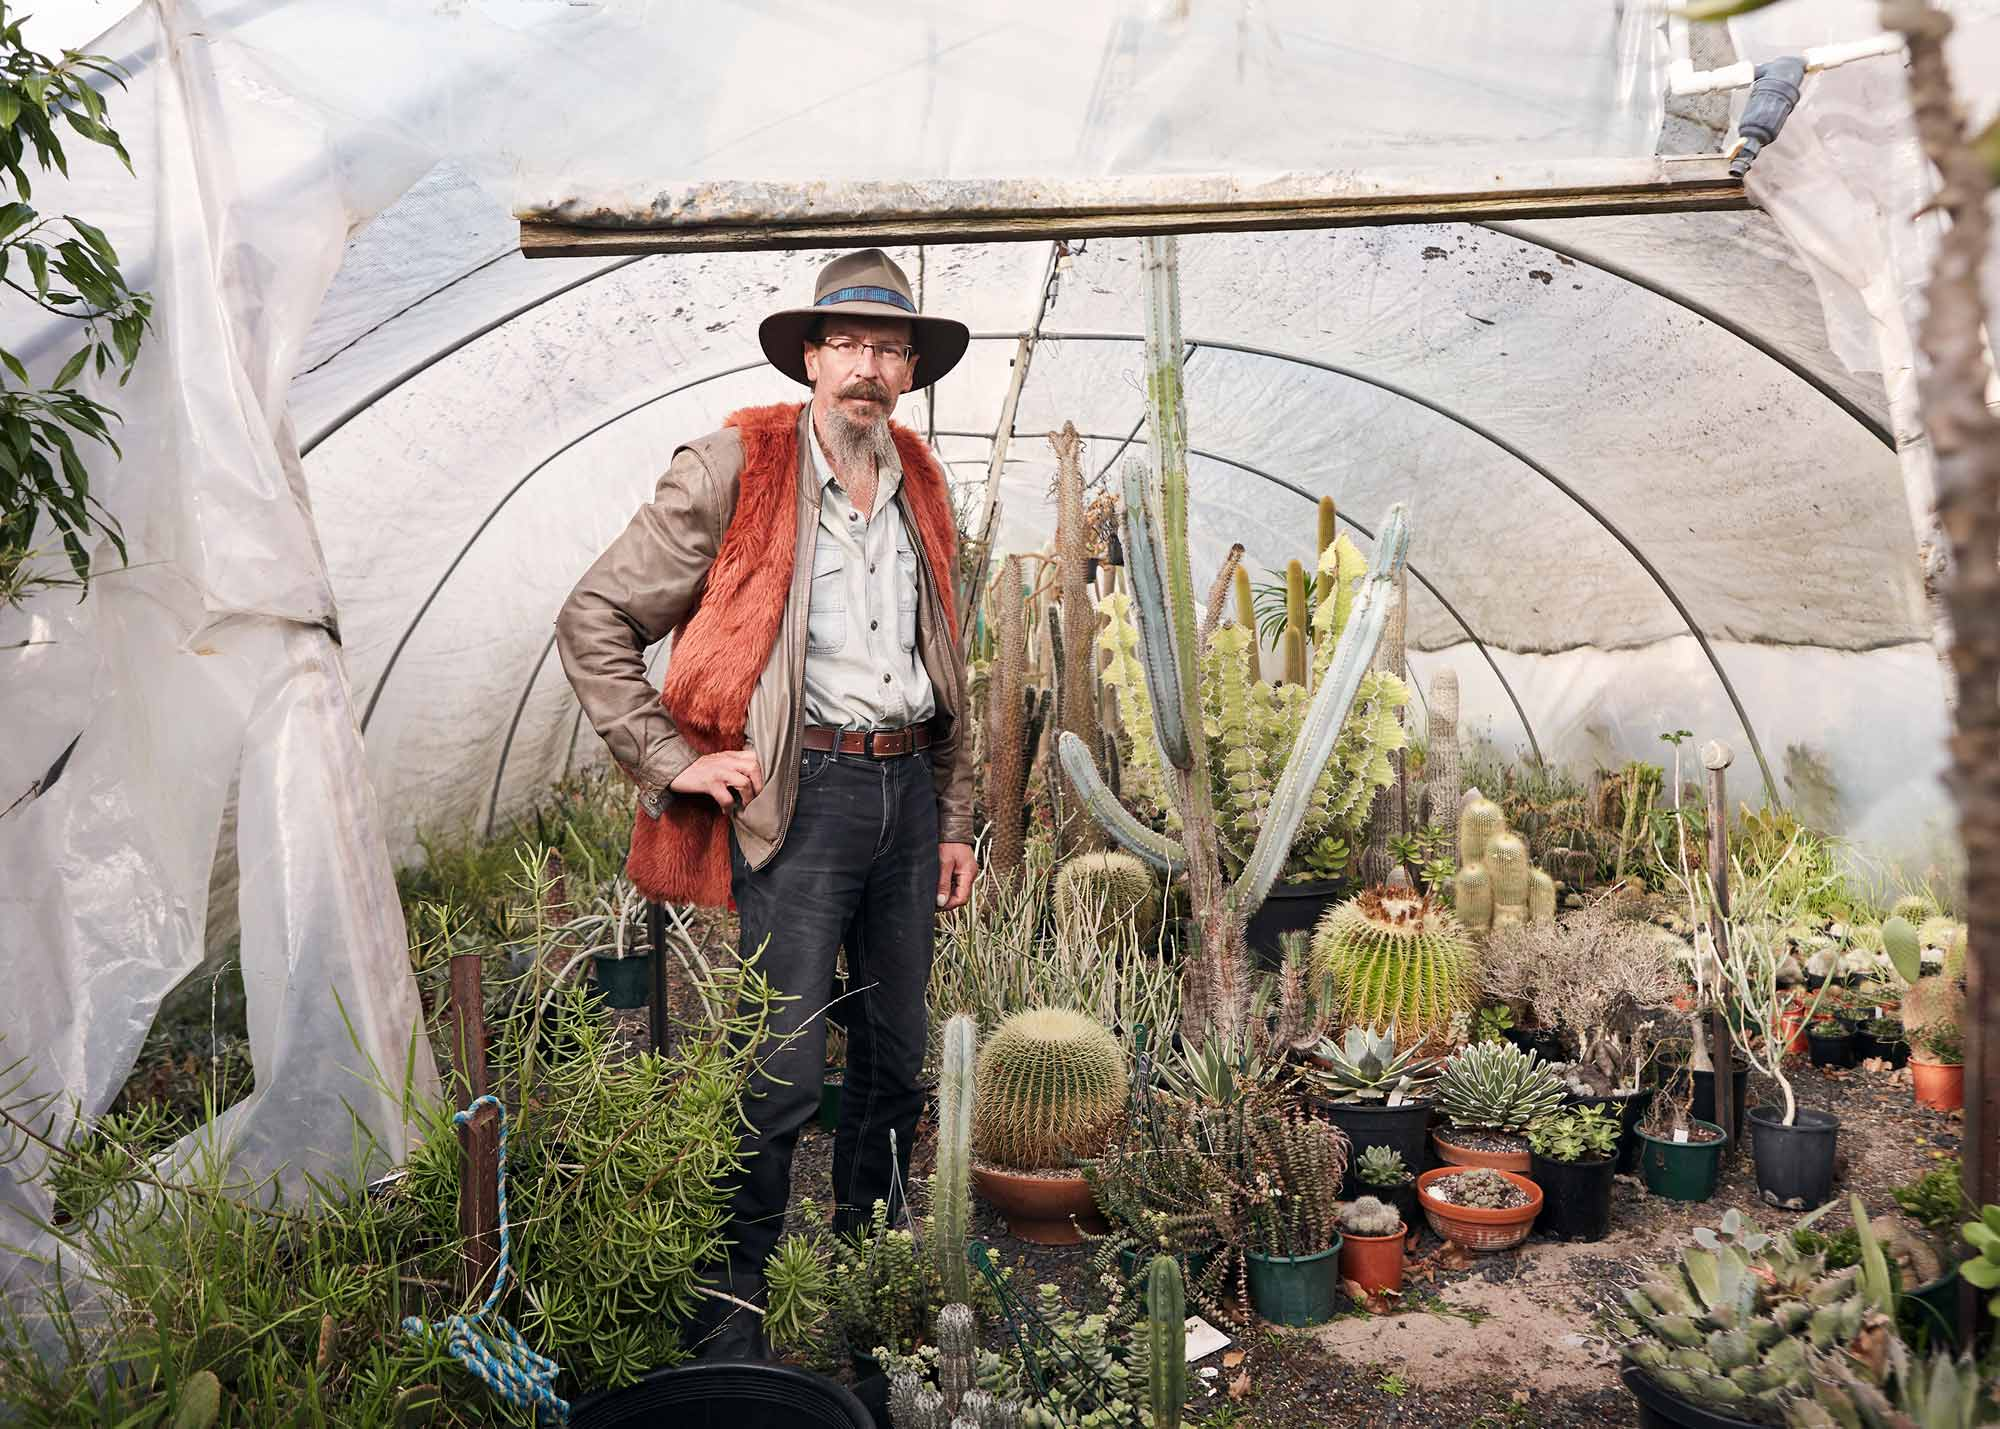 Miss Bossy Boots photographer Heather Dinas' Cactus flower blooms digitally in global exhibit